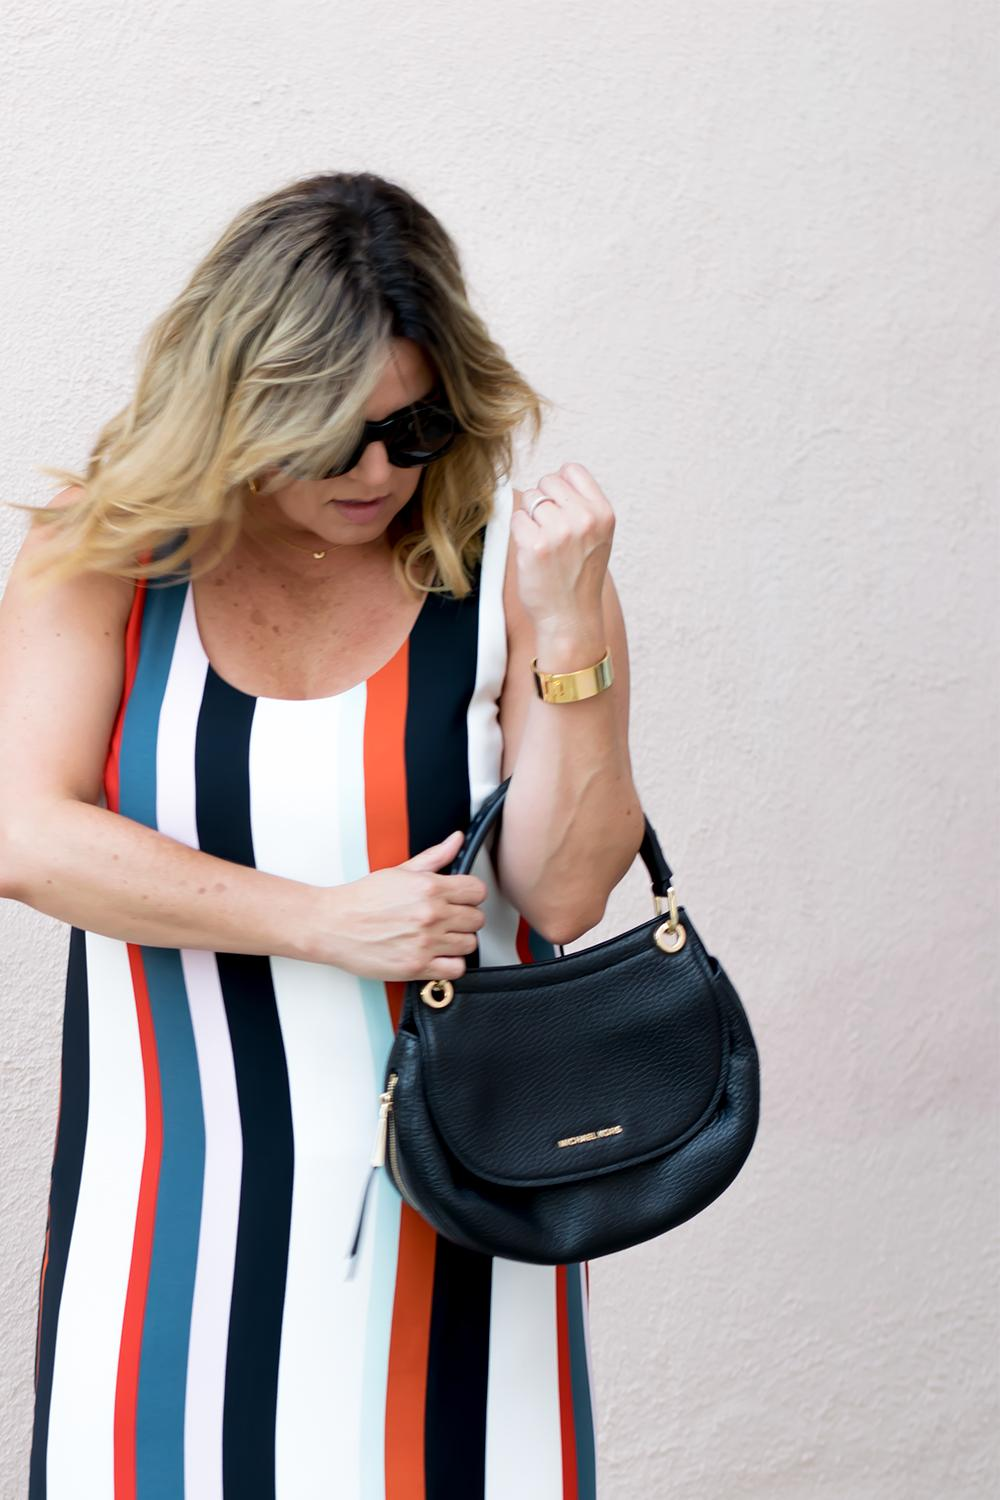 Striped-Tank-Shift-Dress-Michael-Kors-Crossbody-Bag-Ann-Taylor-Semi-Annual-Sale-Barefoot-in-LA-Fashion-Blog-Style-Ideas-Outfits_1441